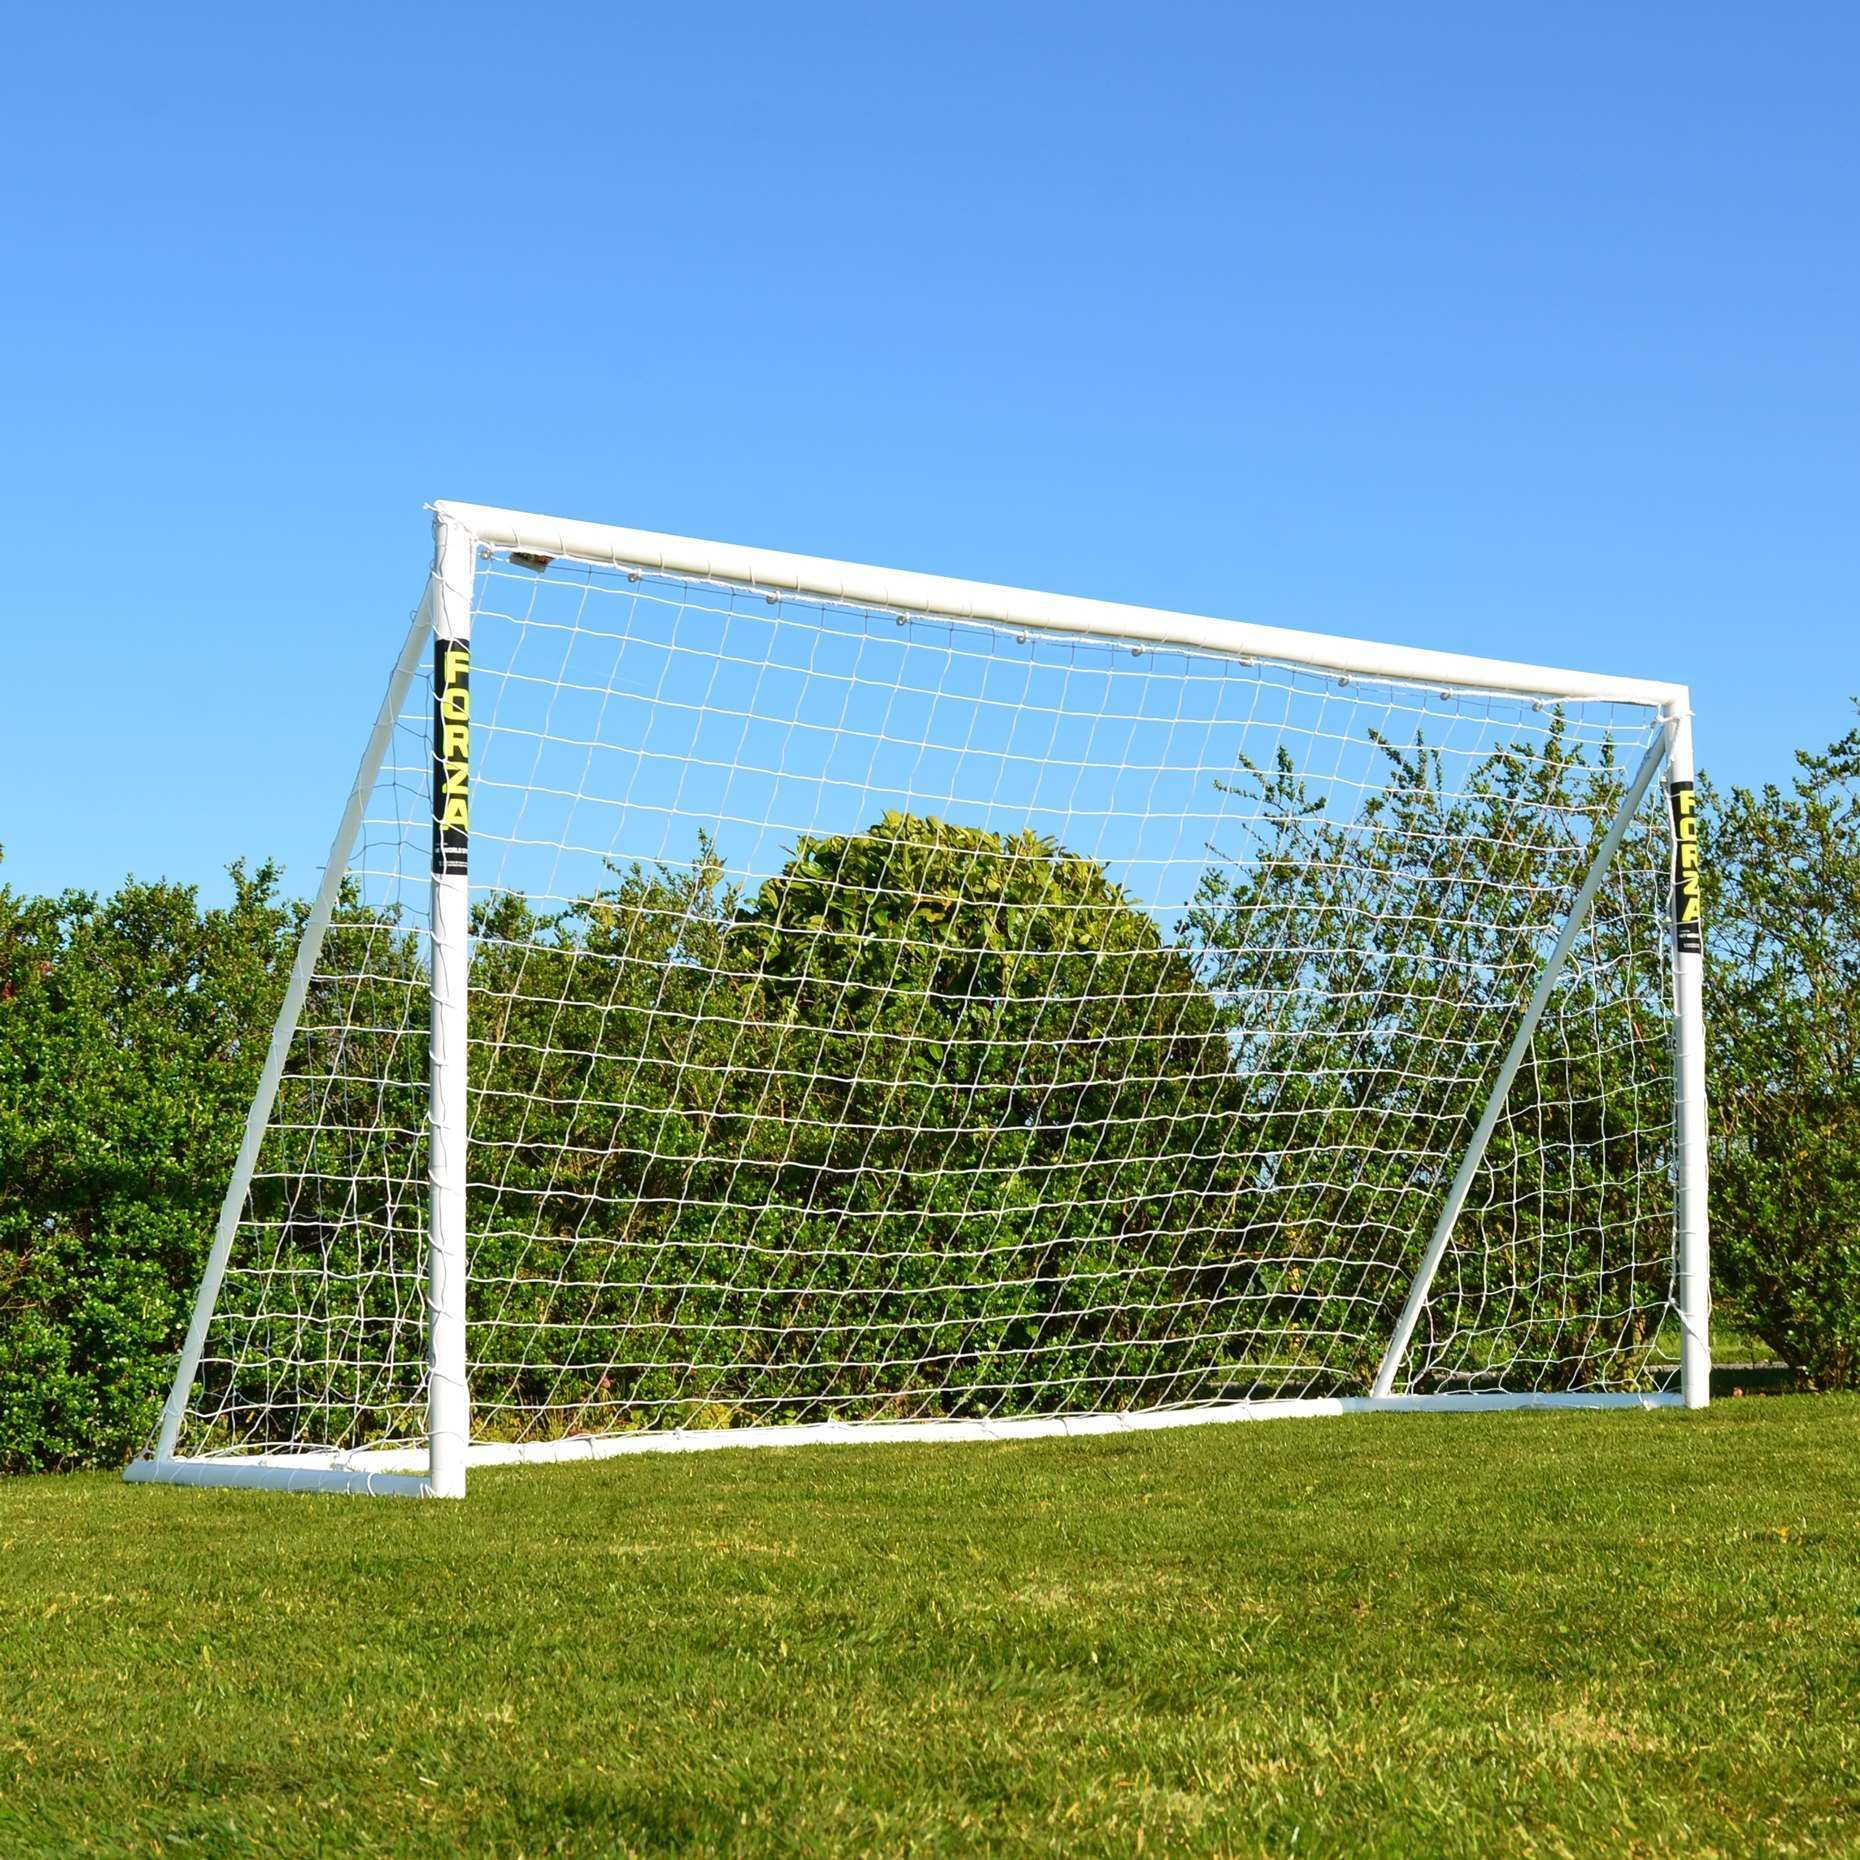 a98fd72e2 12 x 6 FORZA Soccer Goal Post | Mini-Soccer Goals | Junior Soccer Goals |  PVC Backyard Goals | Net World Sports USA